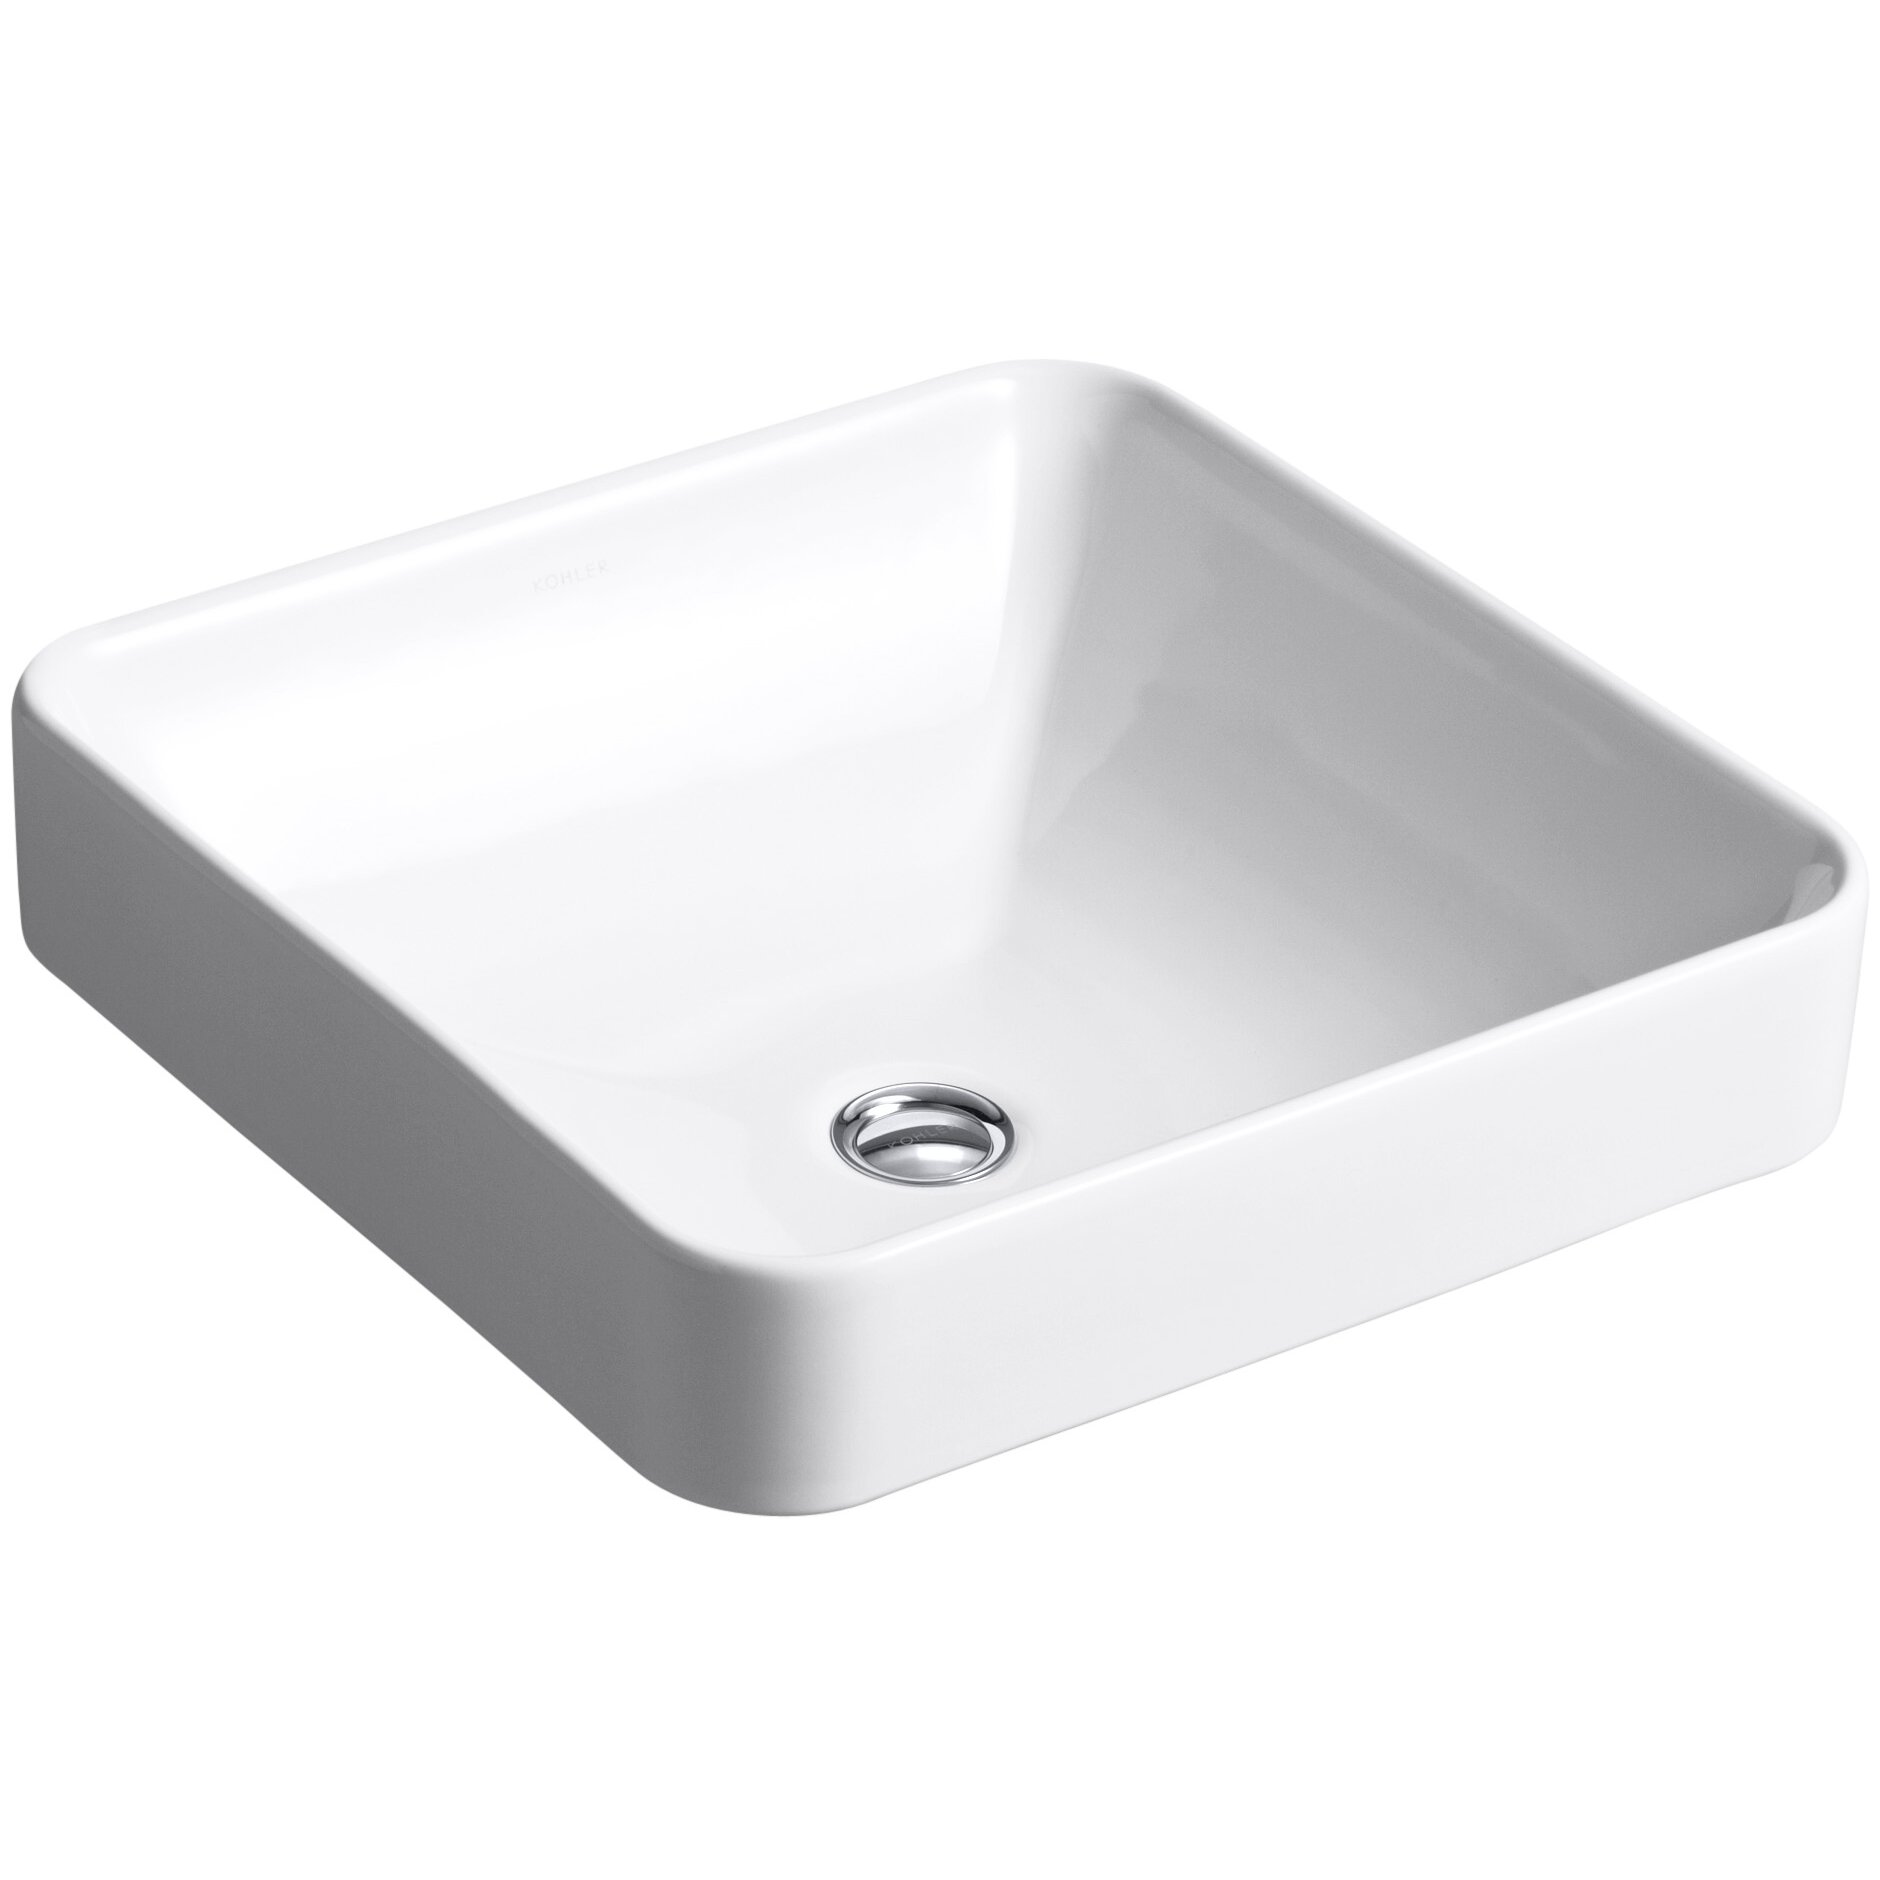 Square bathroom sinks - Kohler Vox Square Vessel Above Counter Bathroom Sink